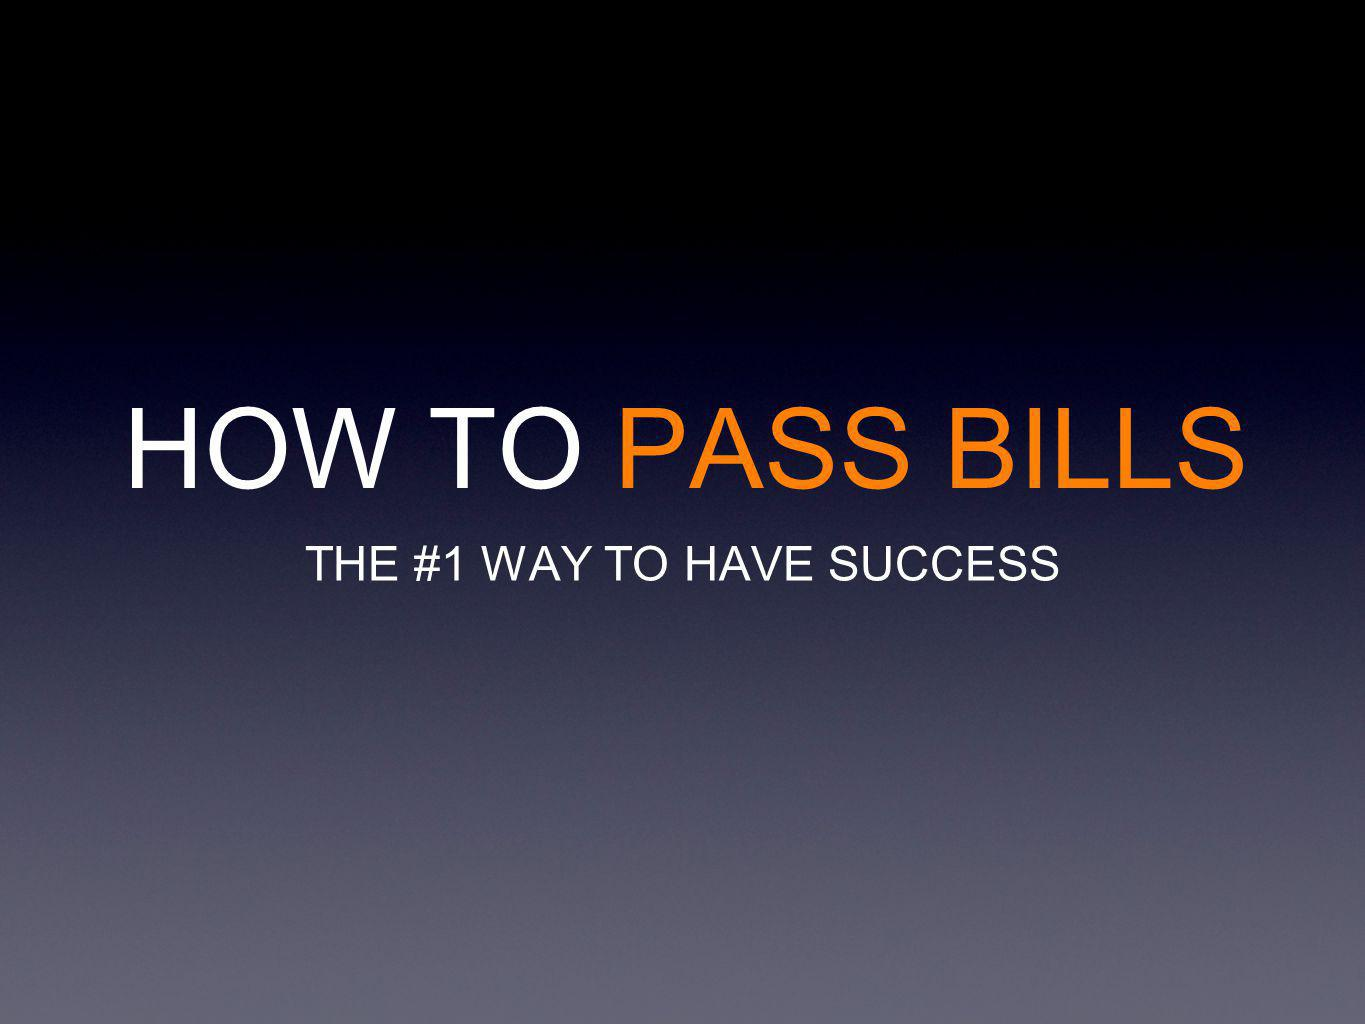 HOW TO PASS BILLS THE #1 WAY TO HAVE SUCCESS